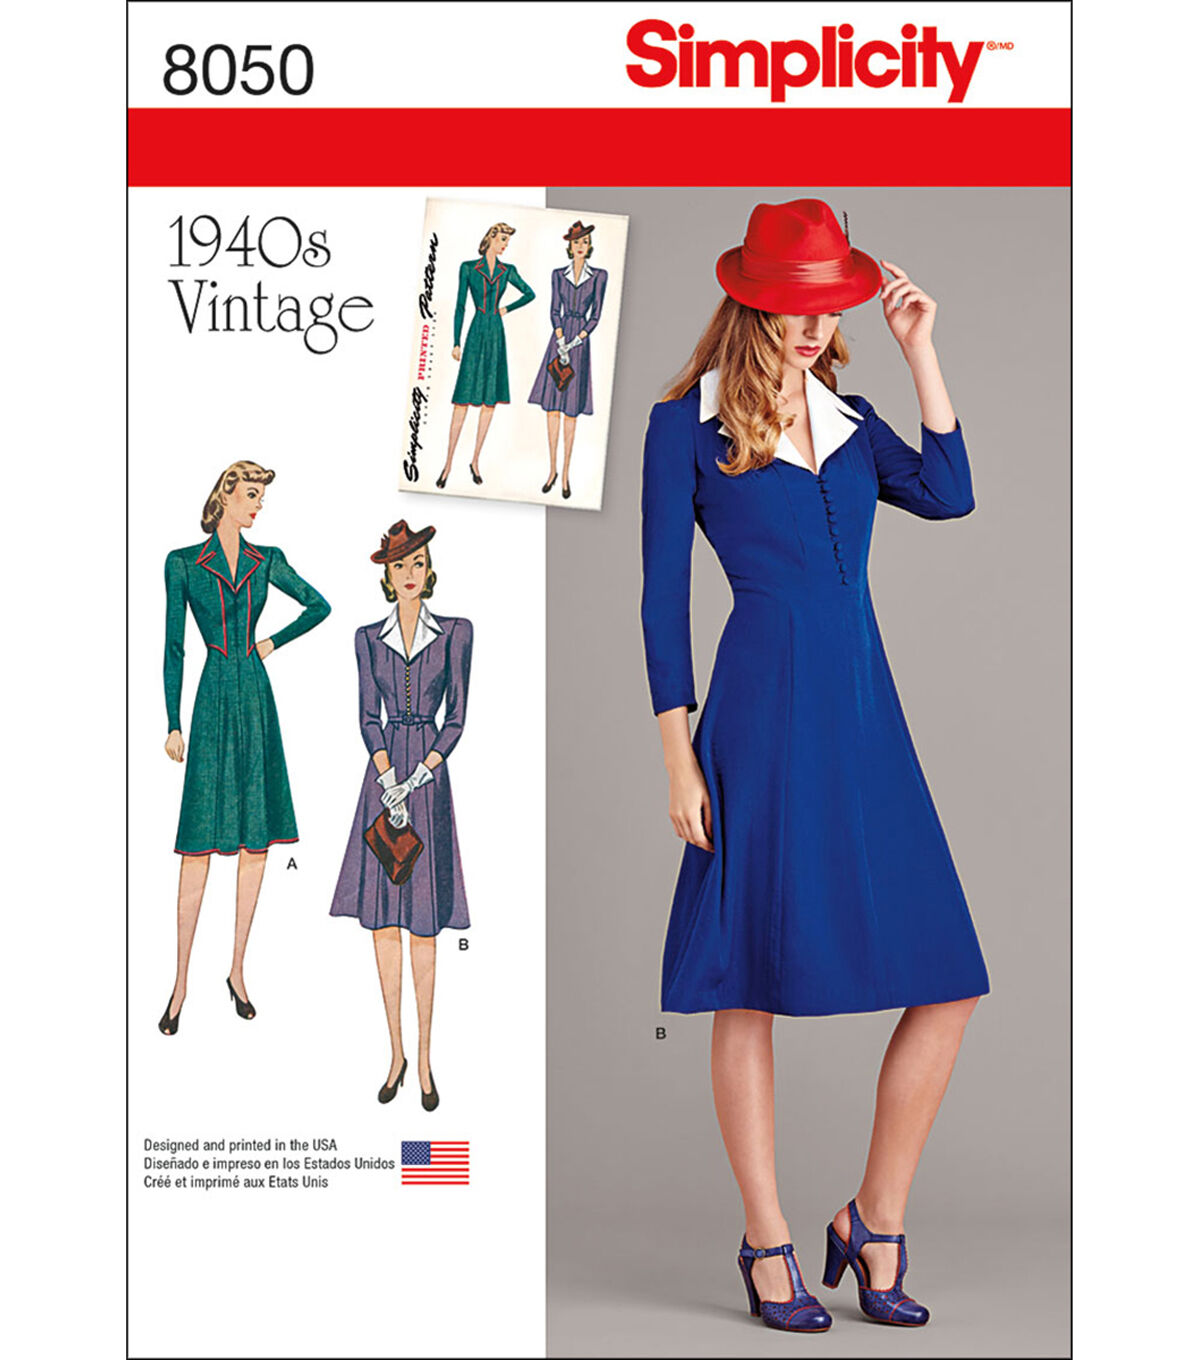 a6bae796a82 1940s Sewing Patterns - Dresses